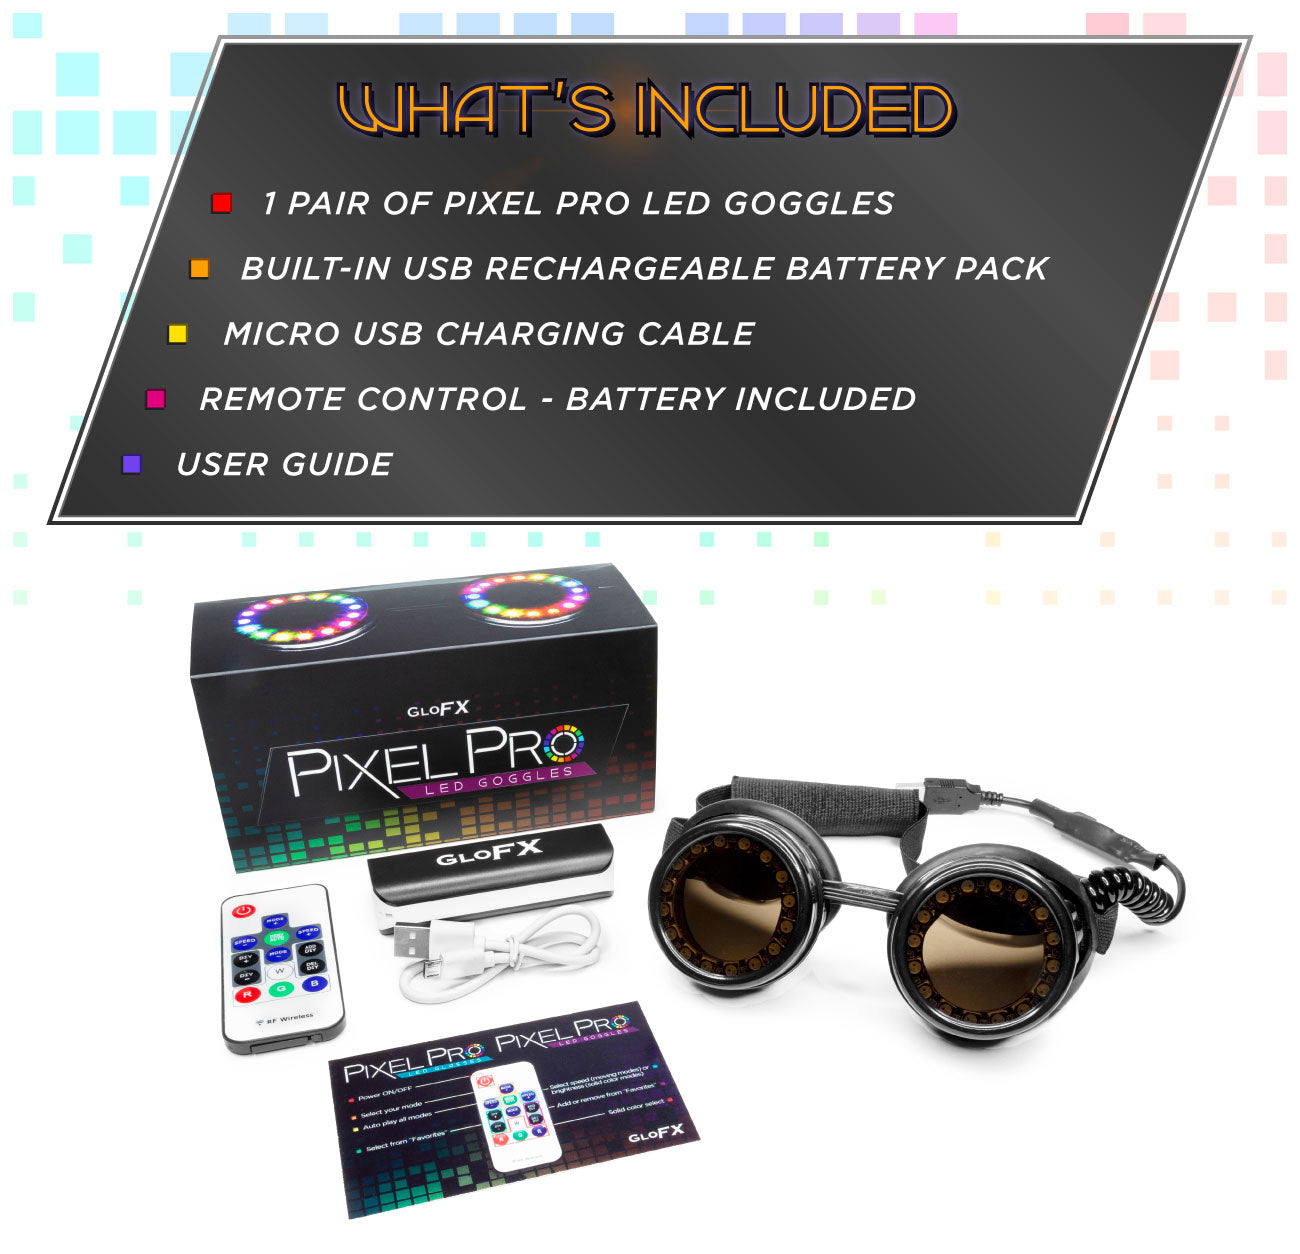 GloFX Pixel Pro LED Goggles What`s Included